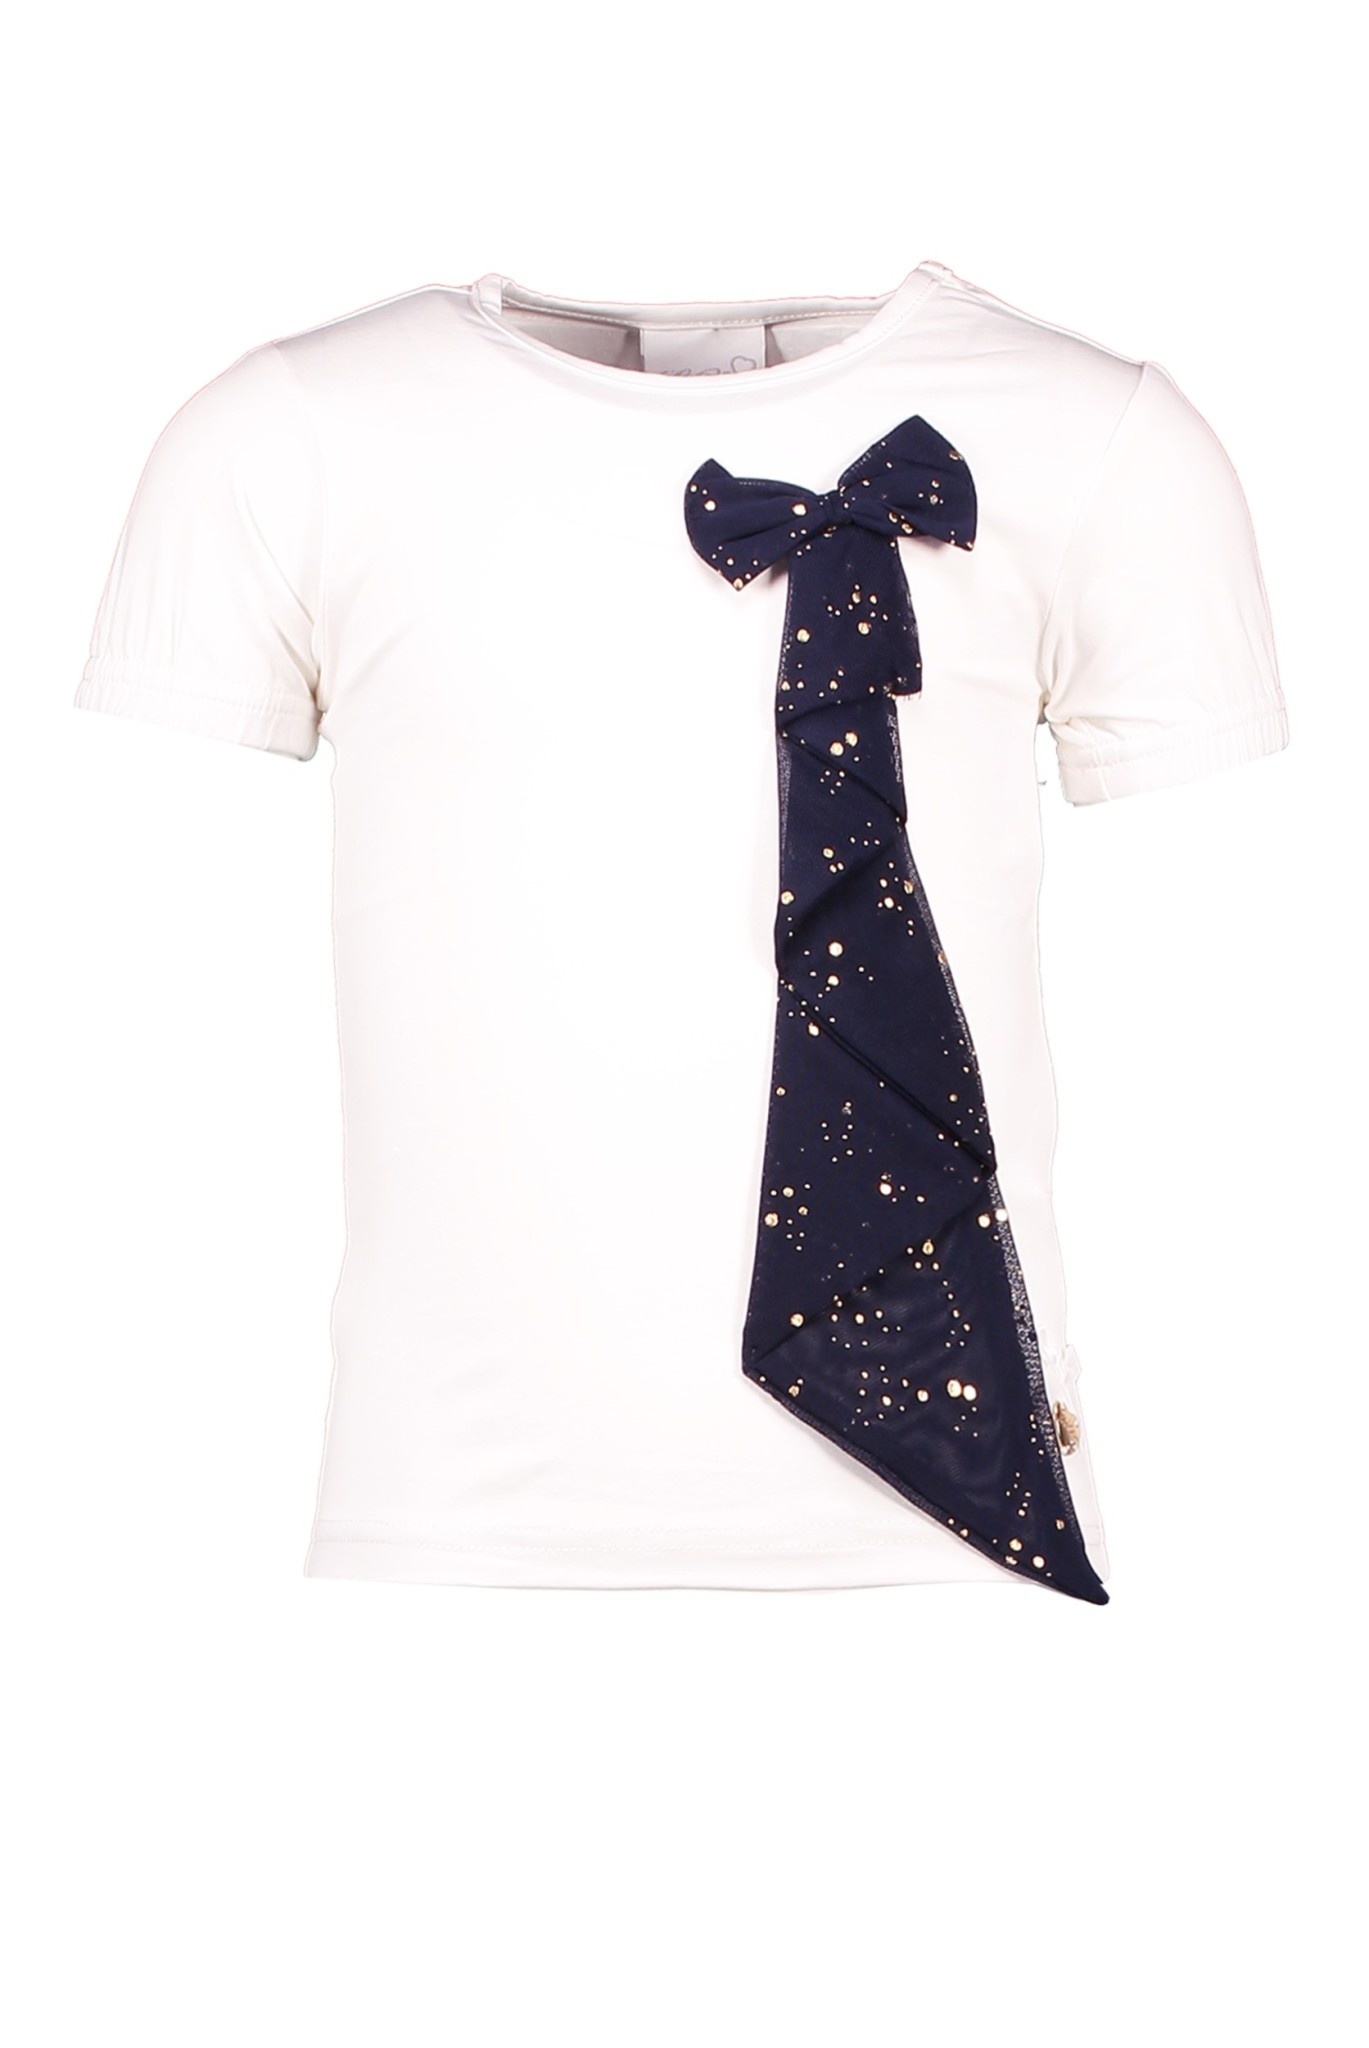 Lechic Le Chic Off White T-Shirt With Navy Bow